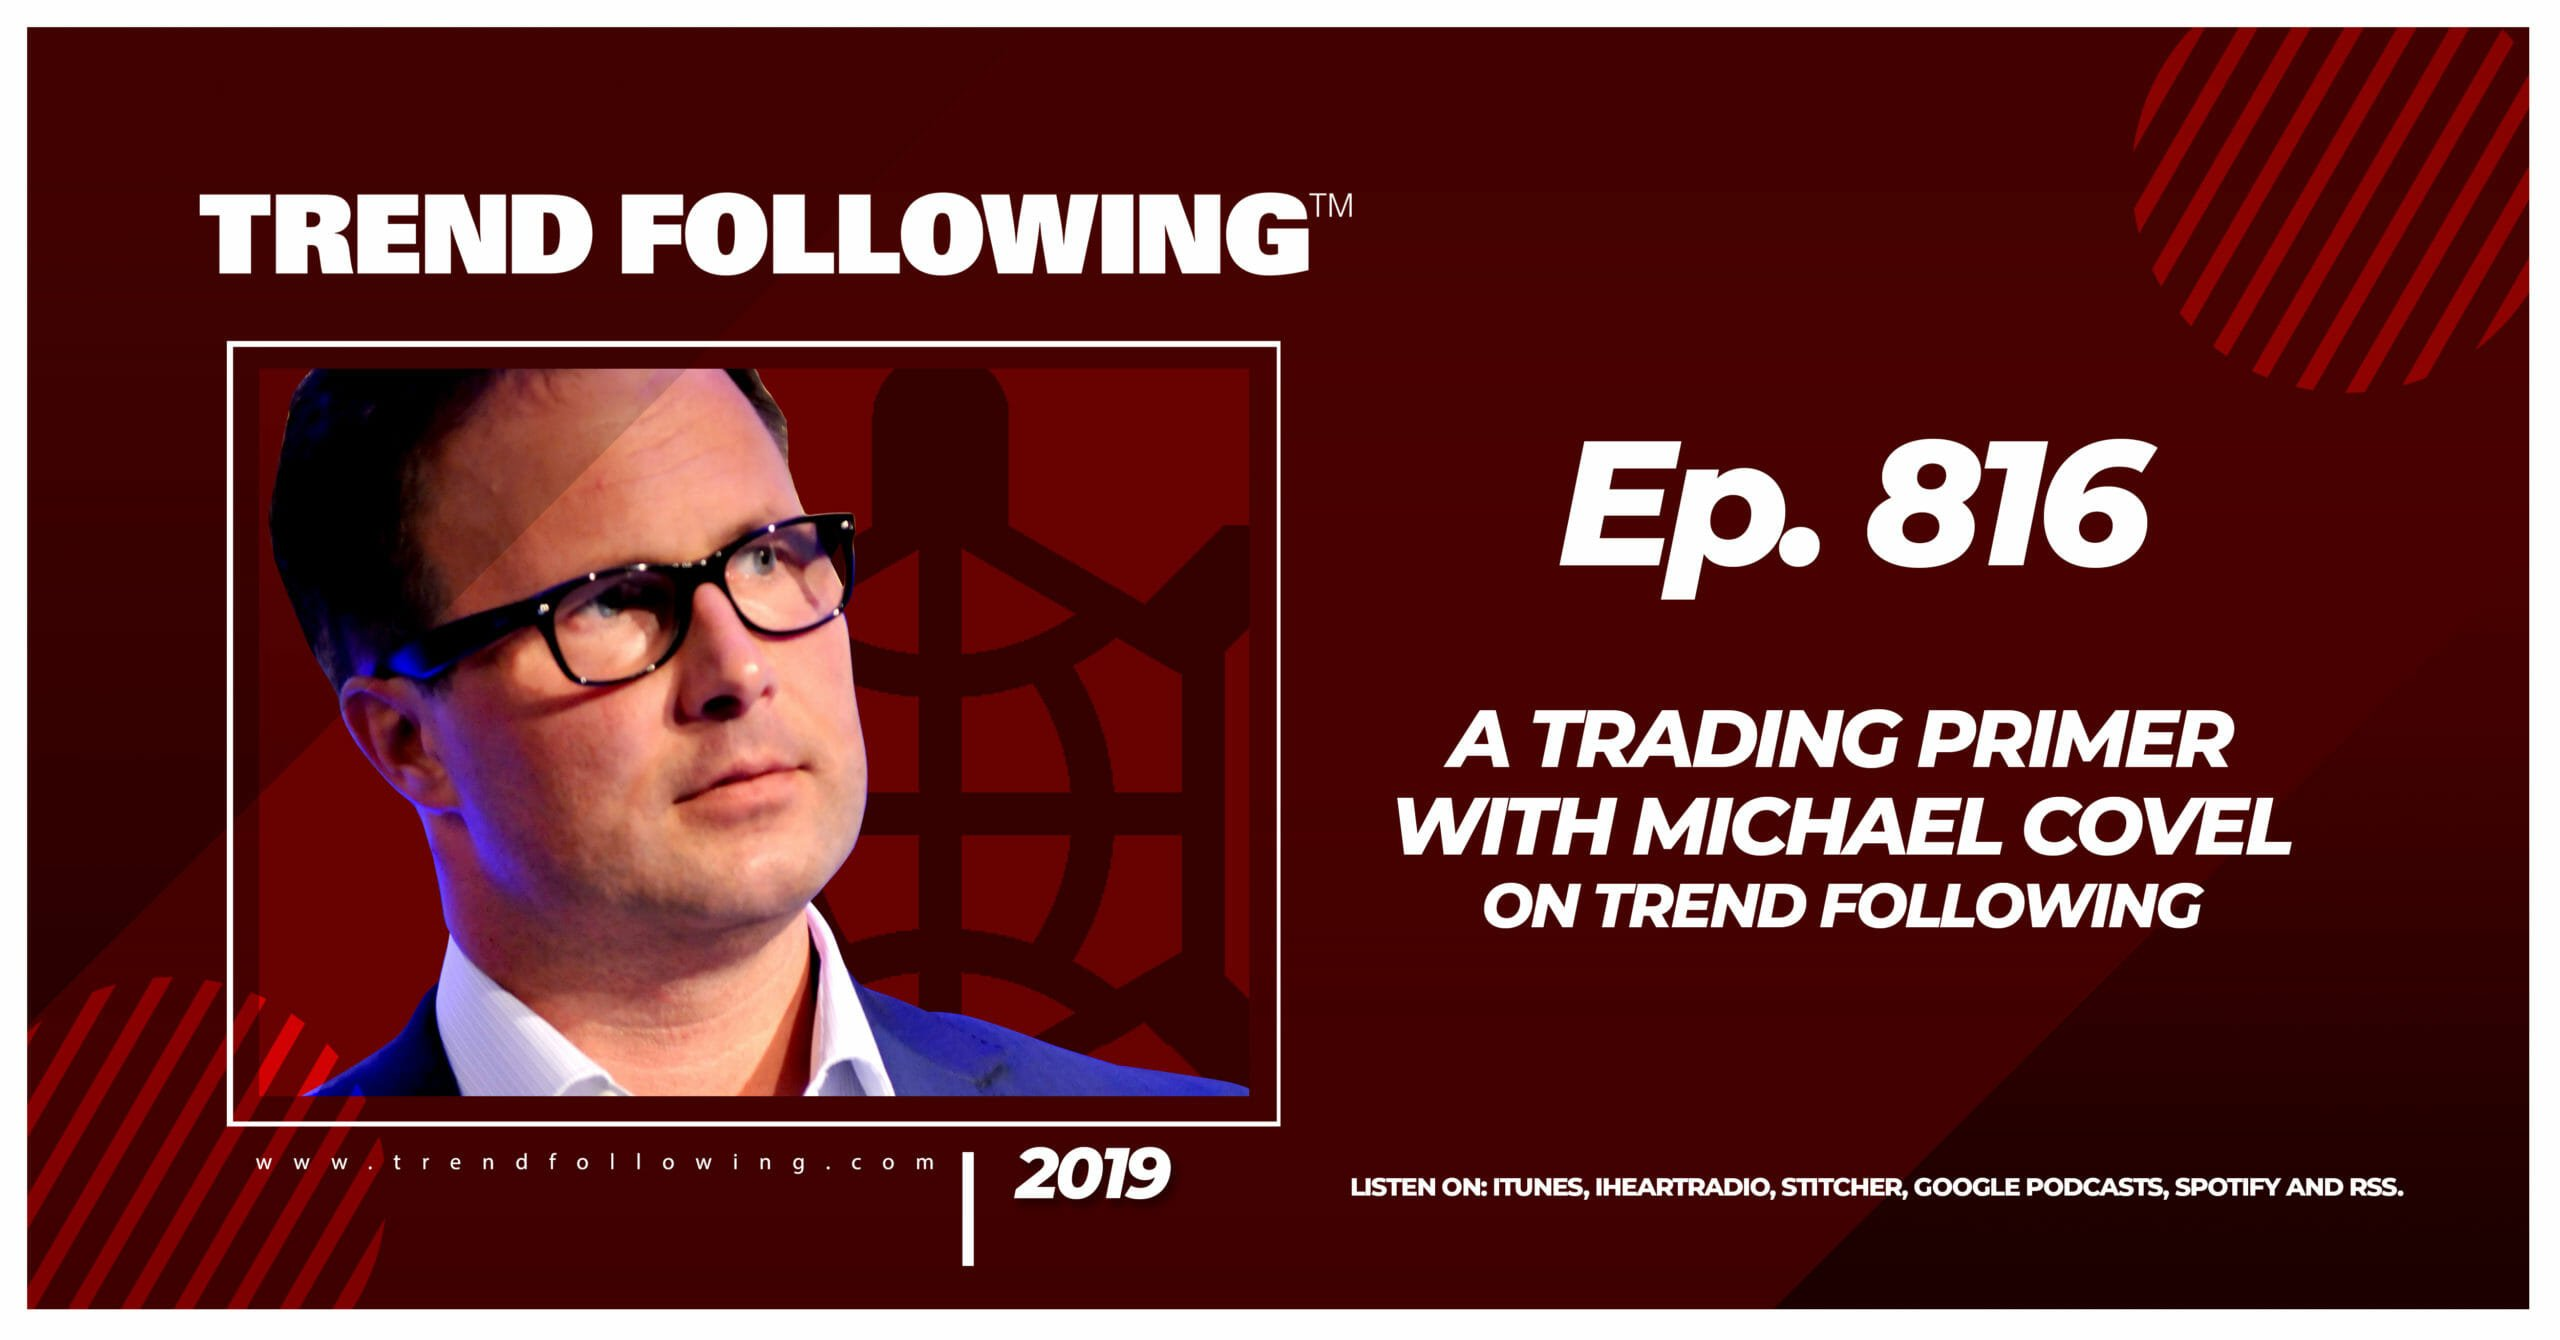 A Trading Primer with Michael Covel